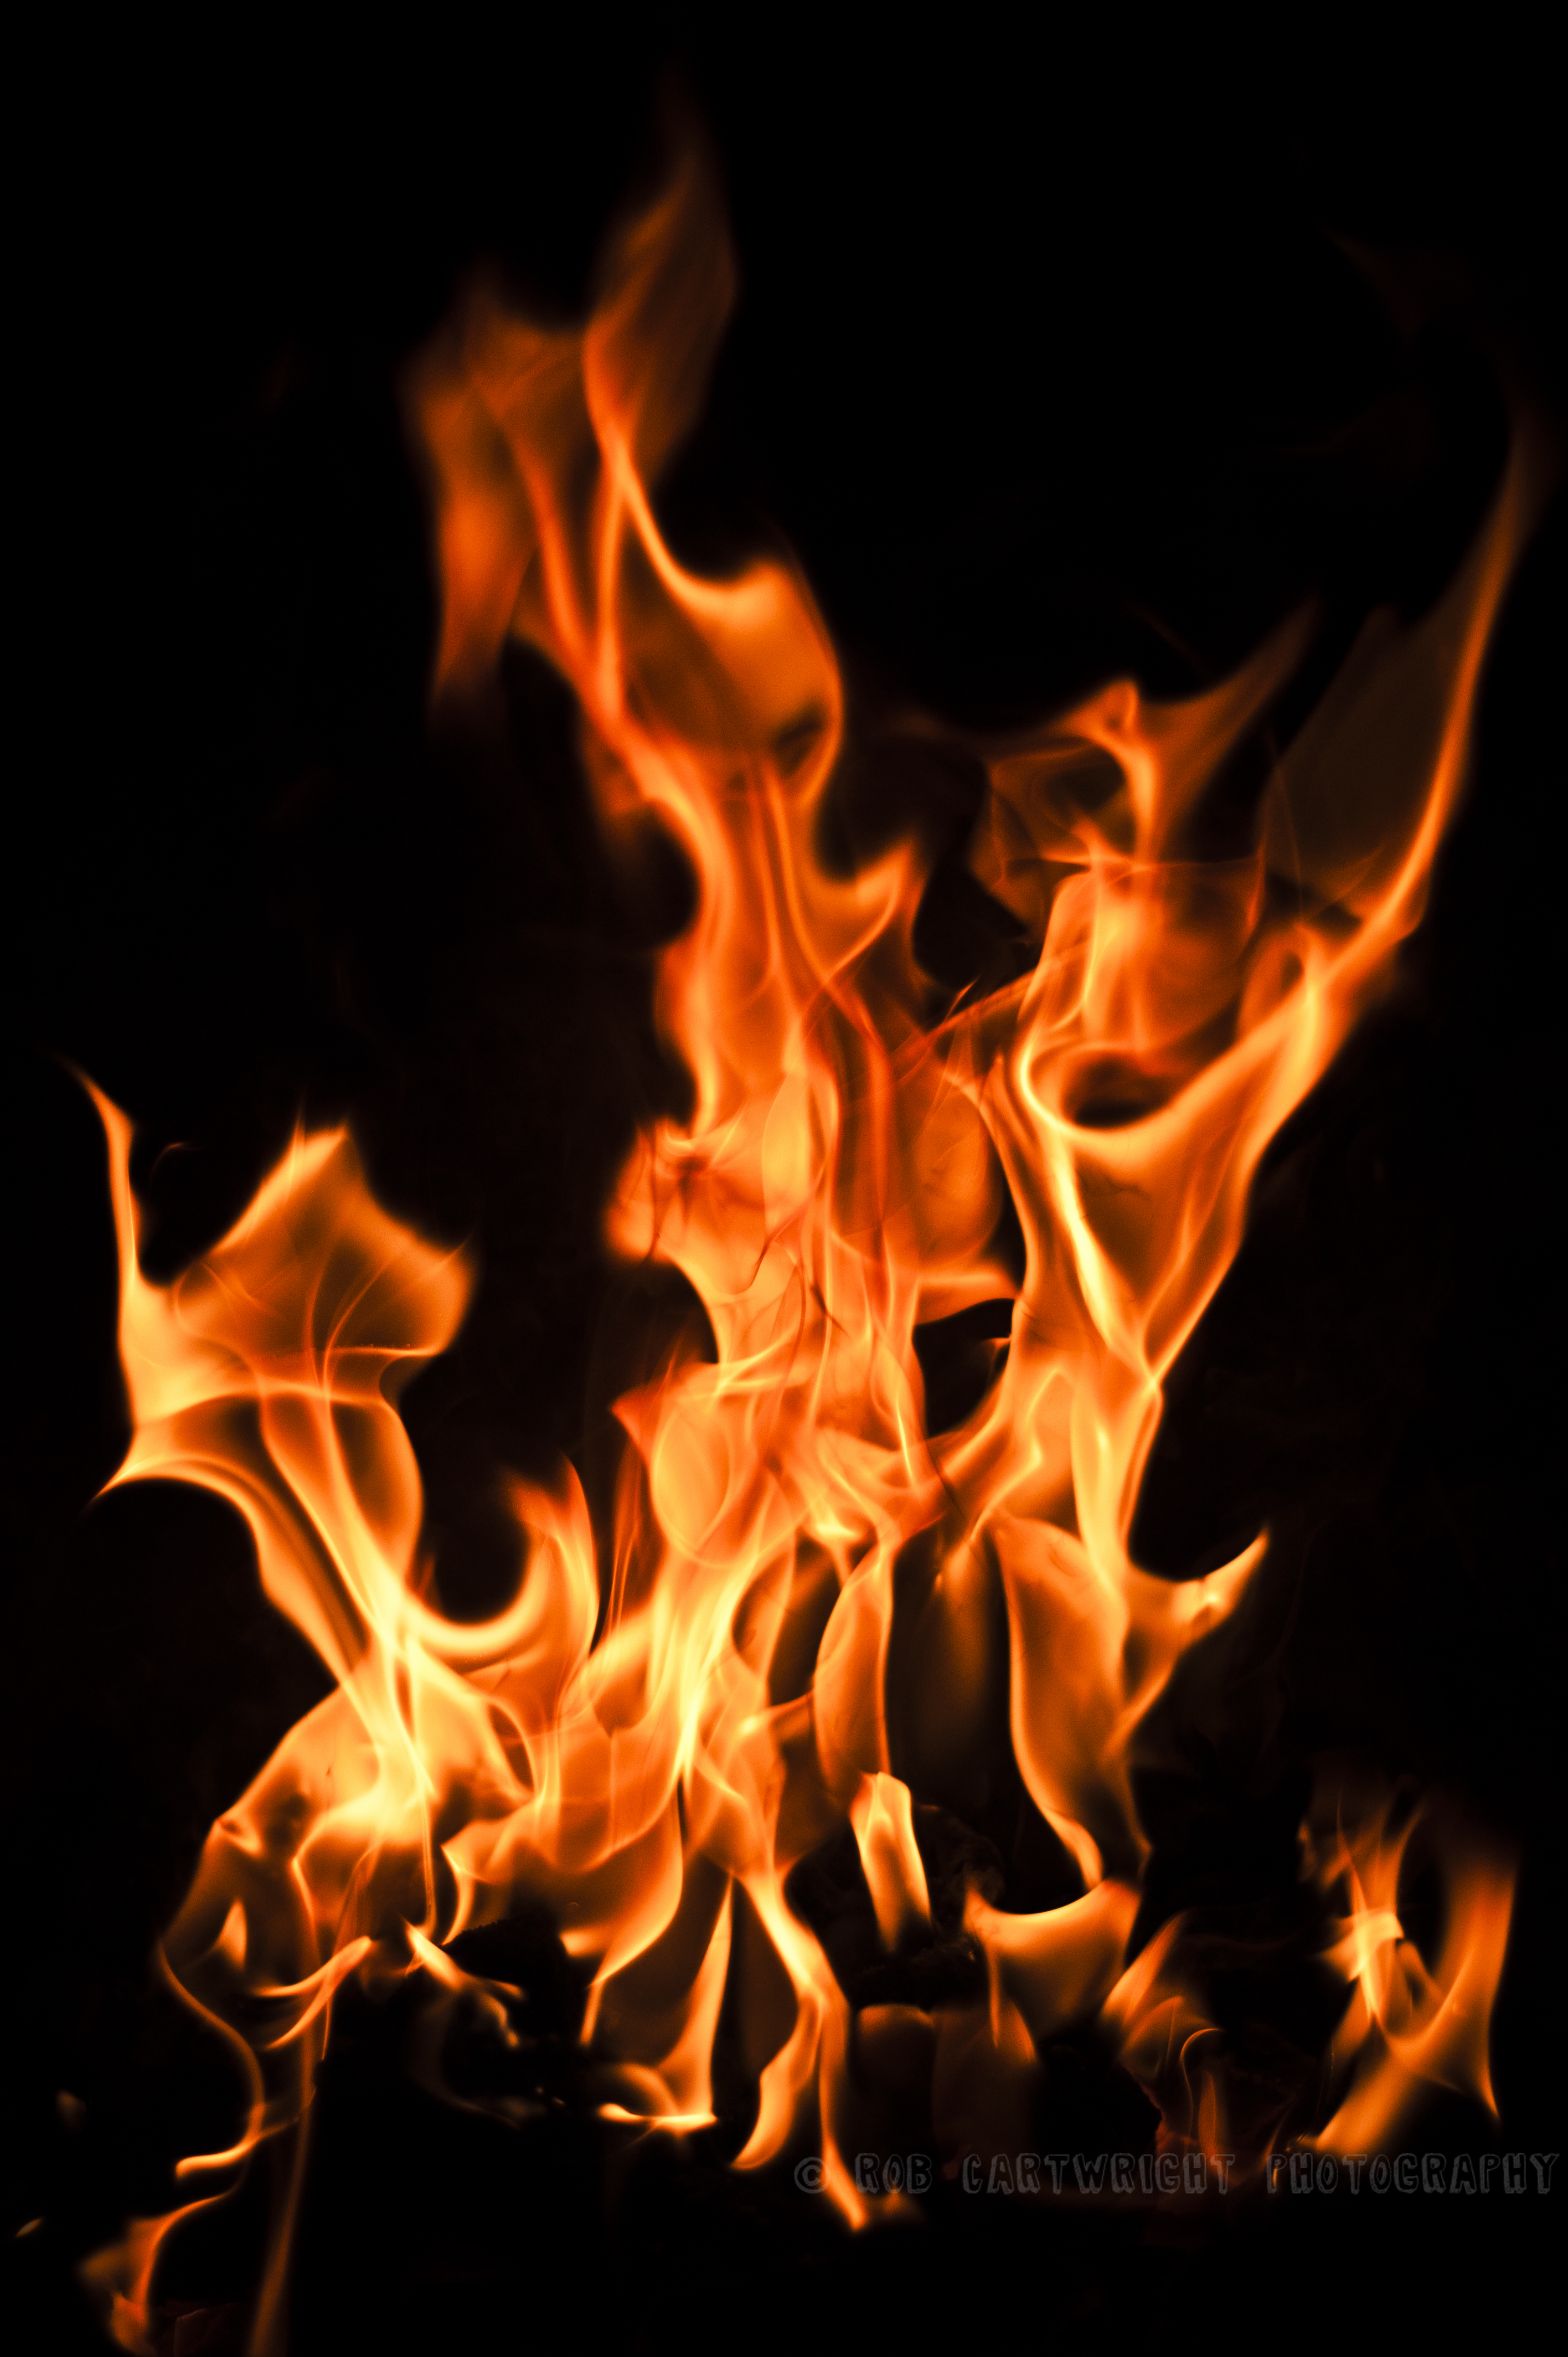 Flames clipart warmth Saturday  Saturday An By